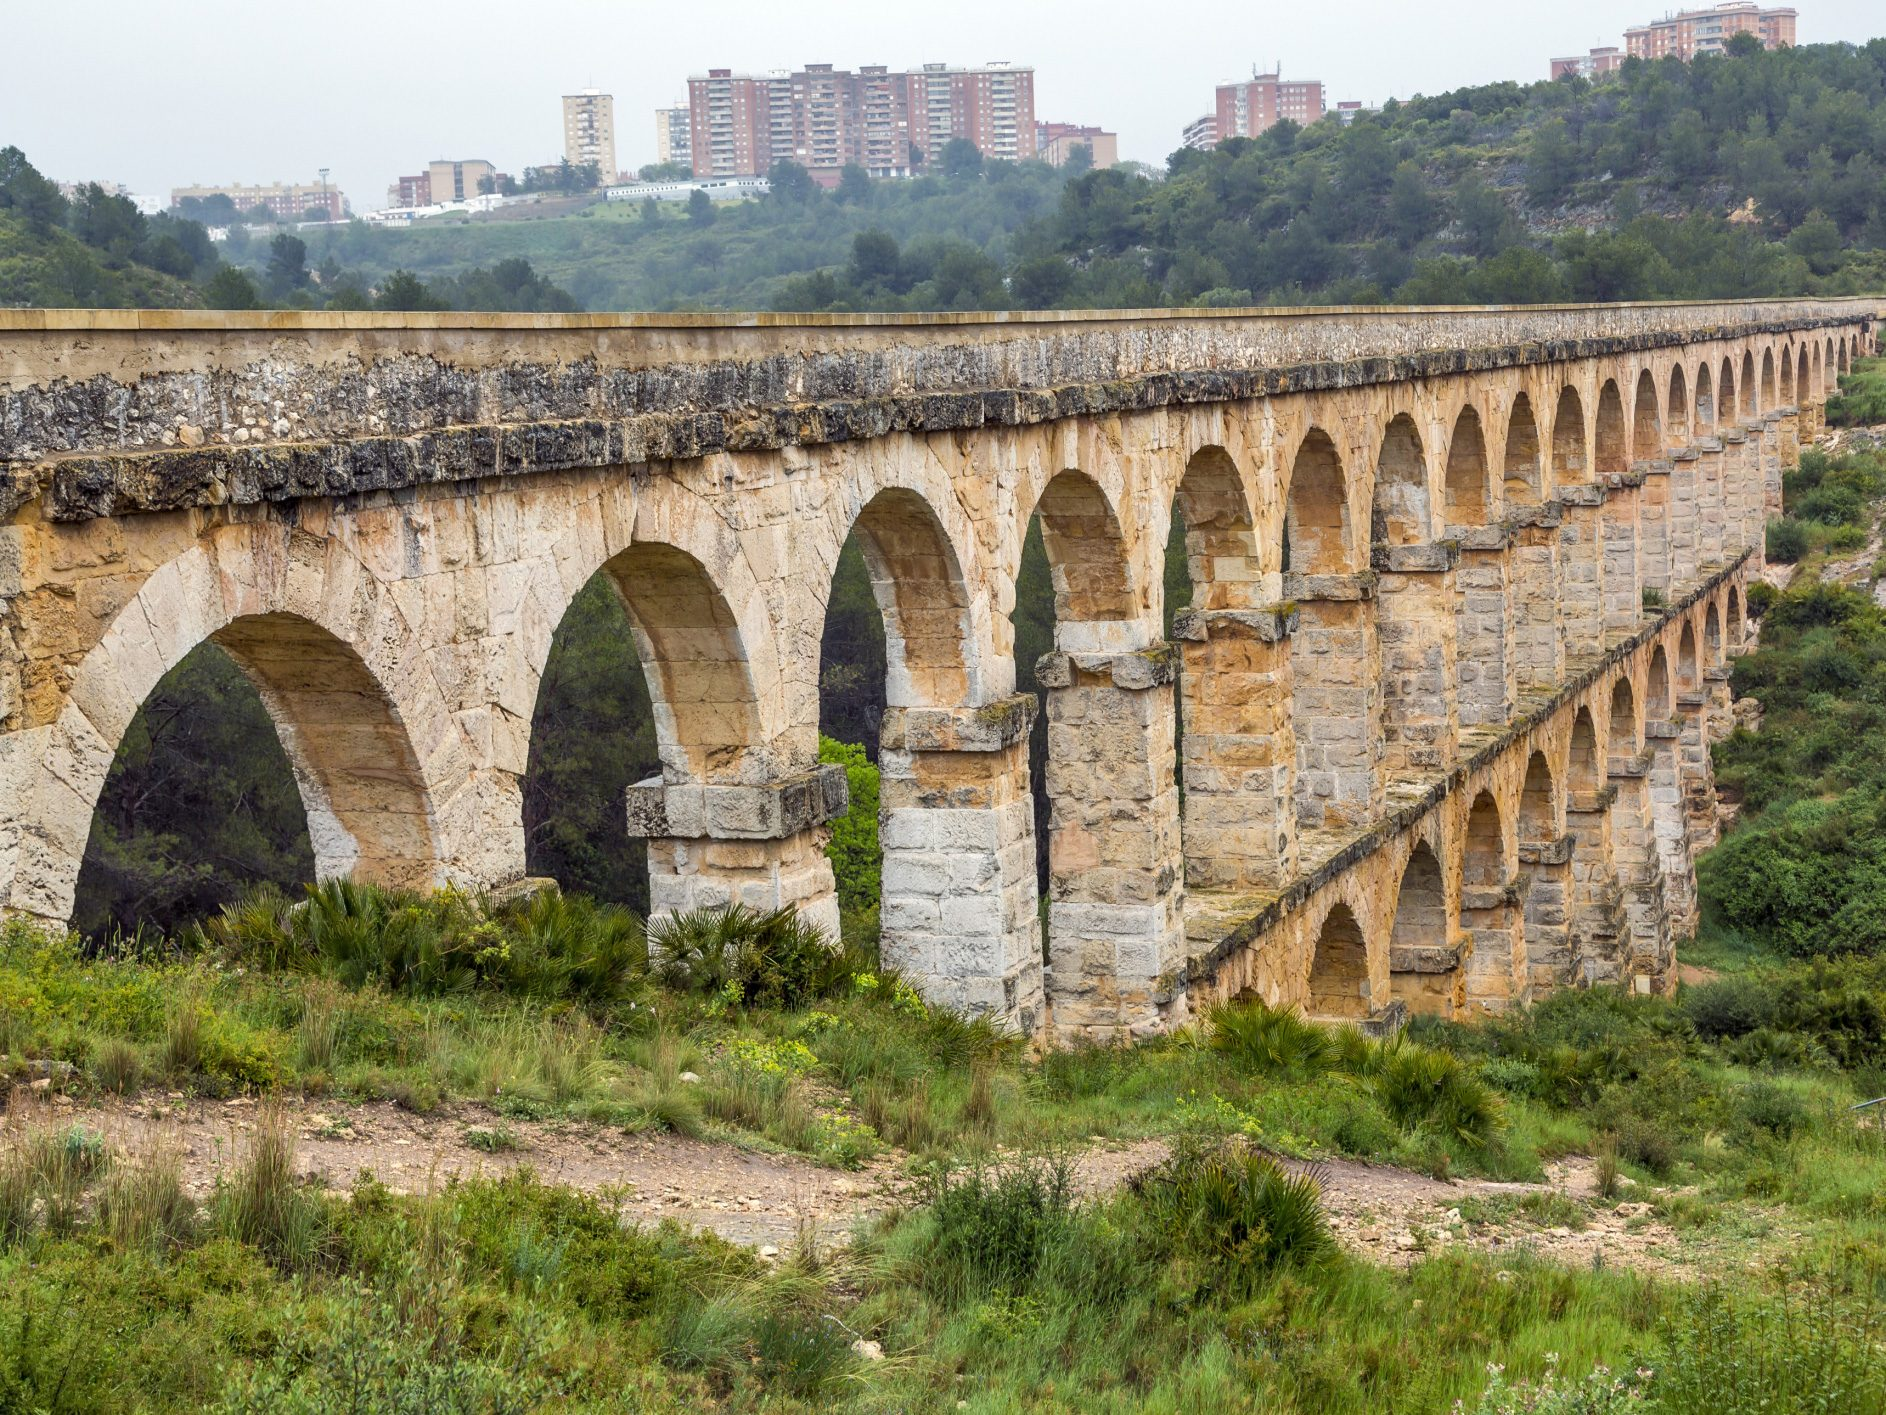 Architectural Wonders Of The Ancient World: The Roman Aqueducts - Italy